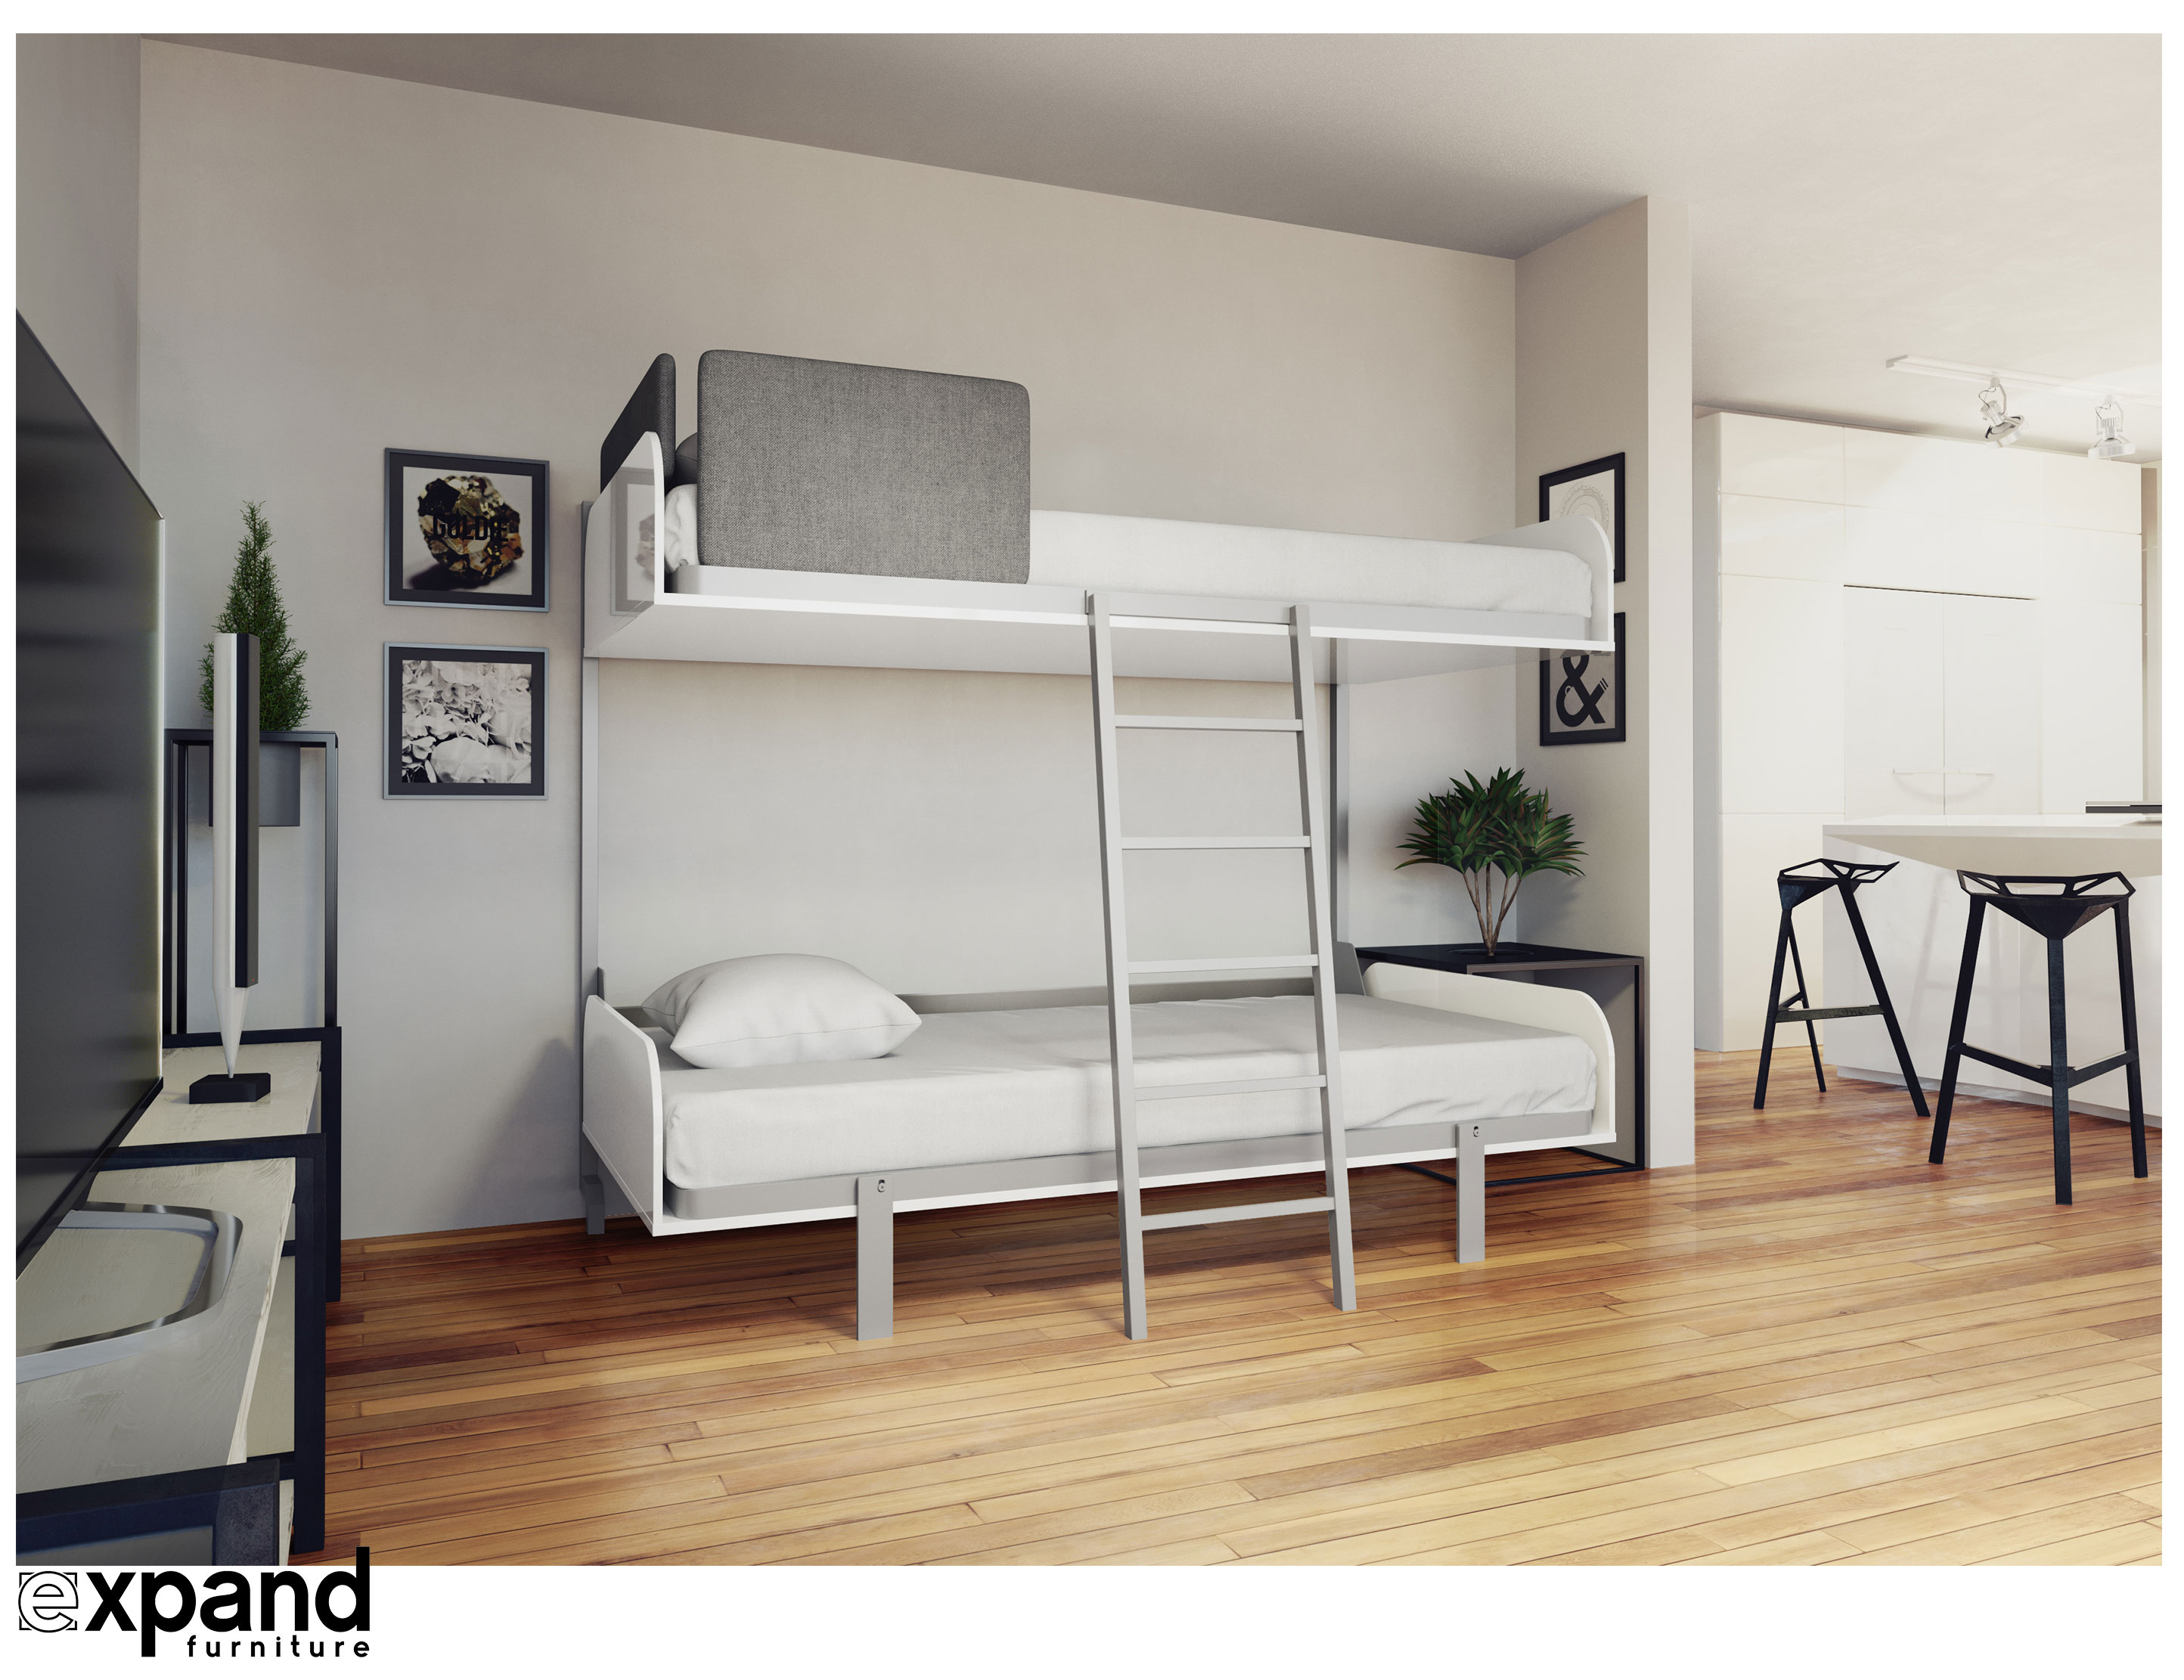 Hover Compact FoldAway Wall Bunk Beds Expand Furniture